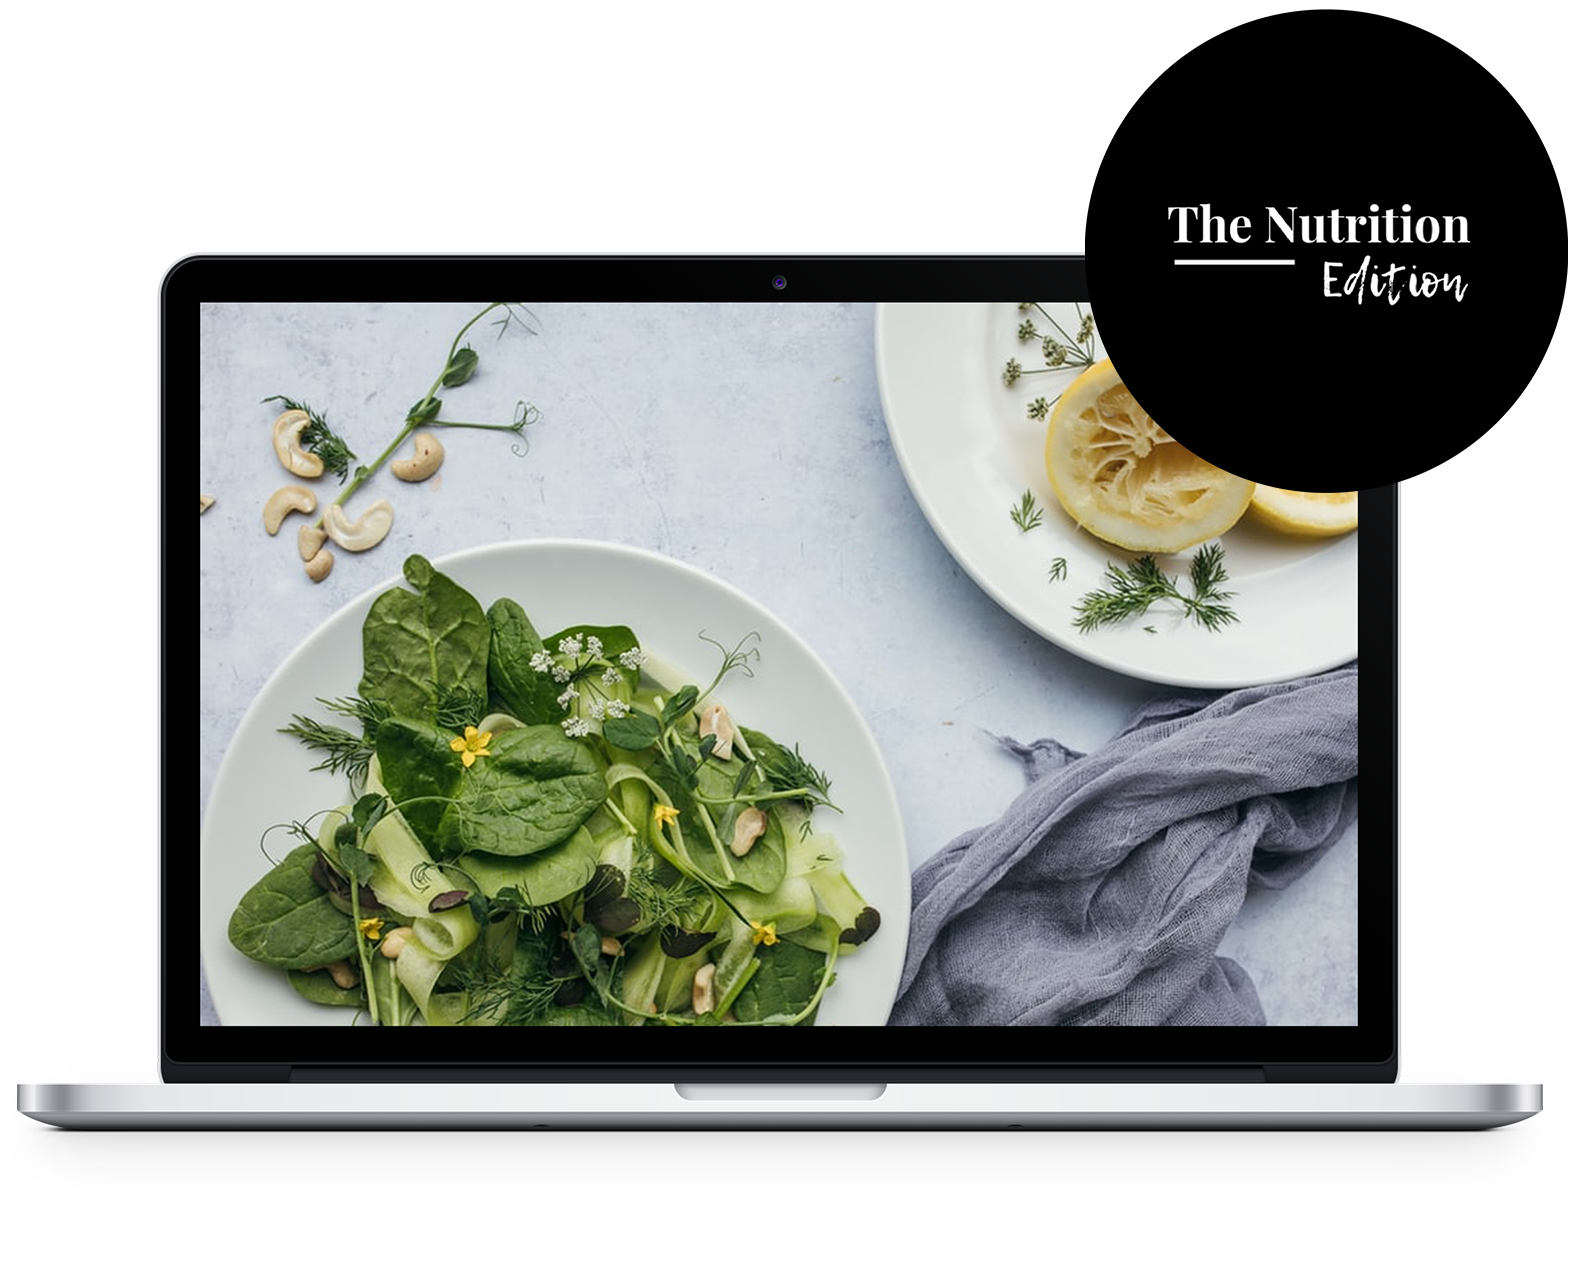 Become a Nutrition Science Expert - Feel confident communicating evidence based nutrition by staying up to date on the latest research in an easy to understand manner.